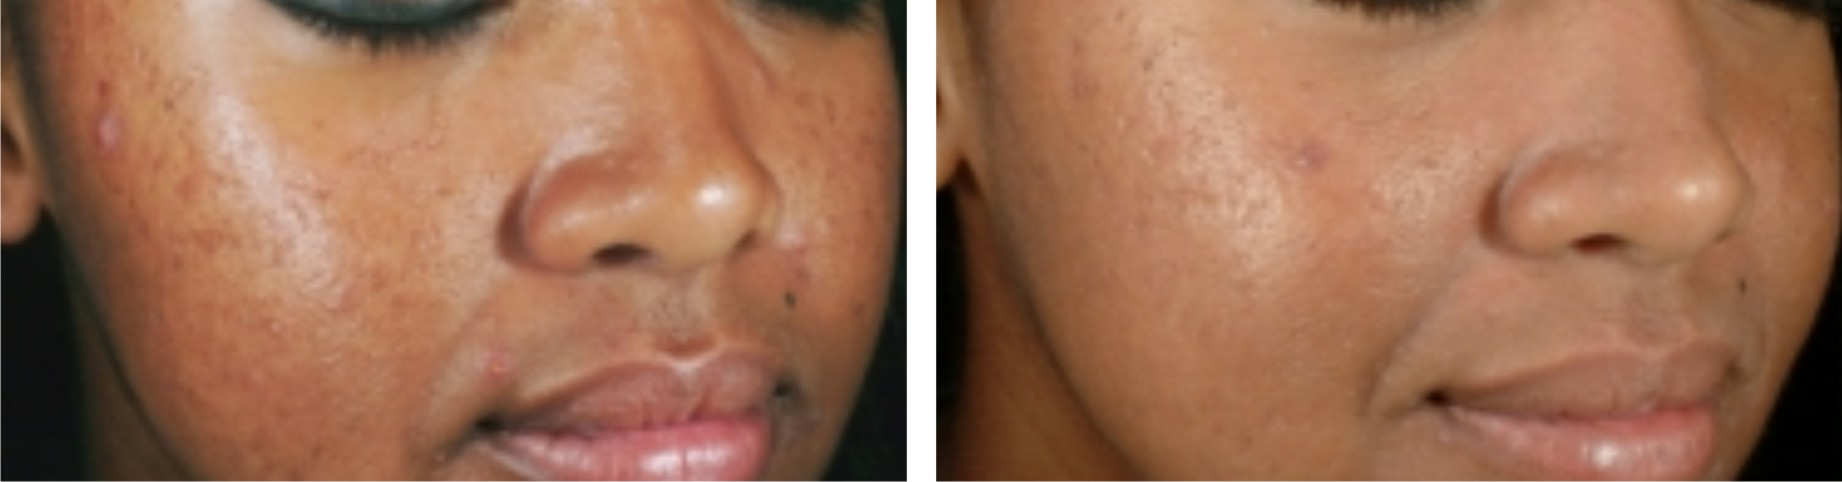 Laser Skin Whitening Image Three